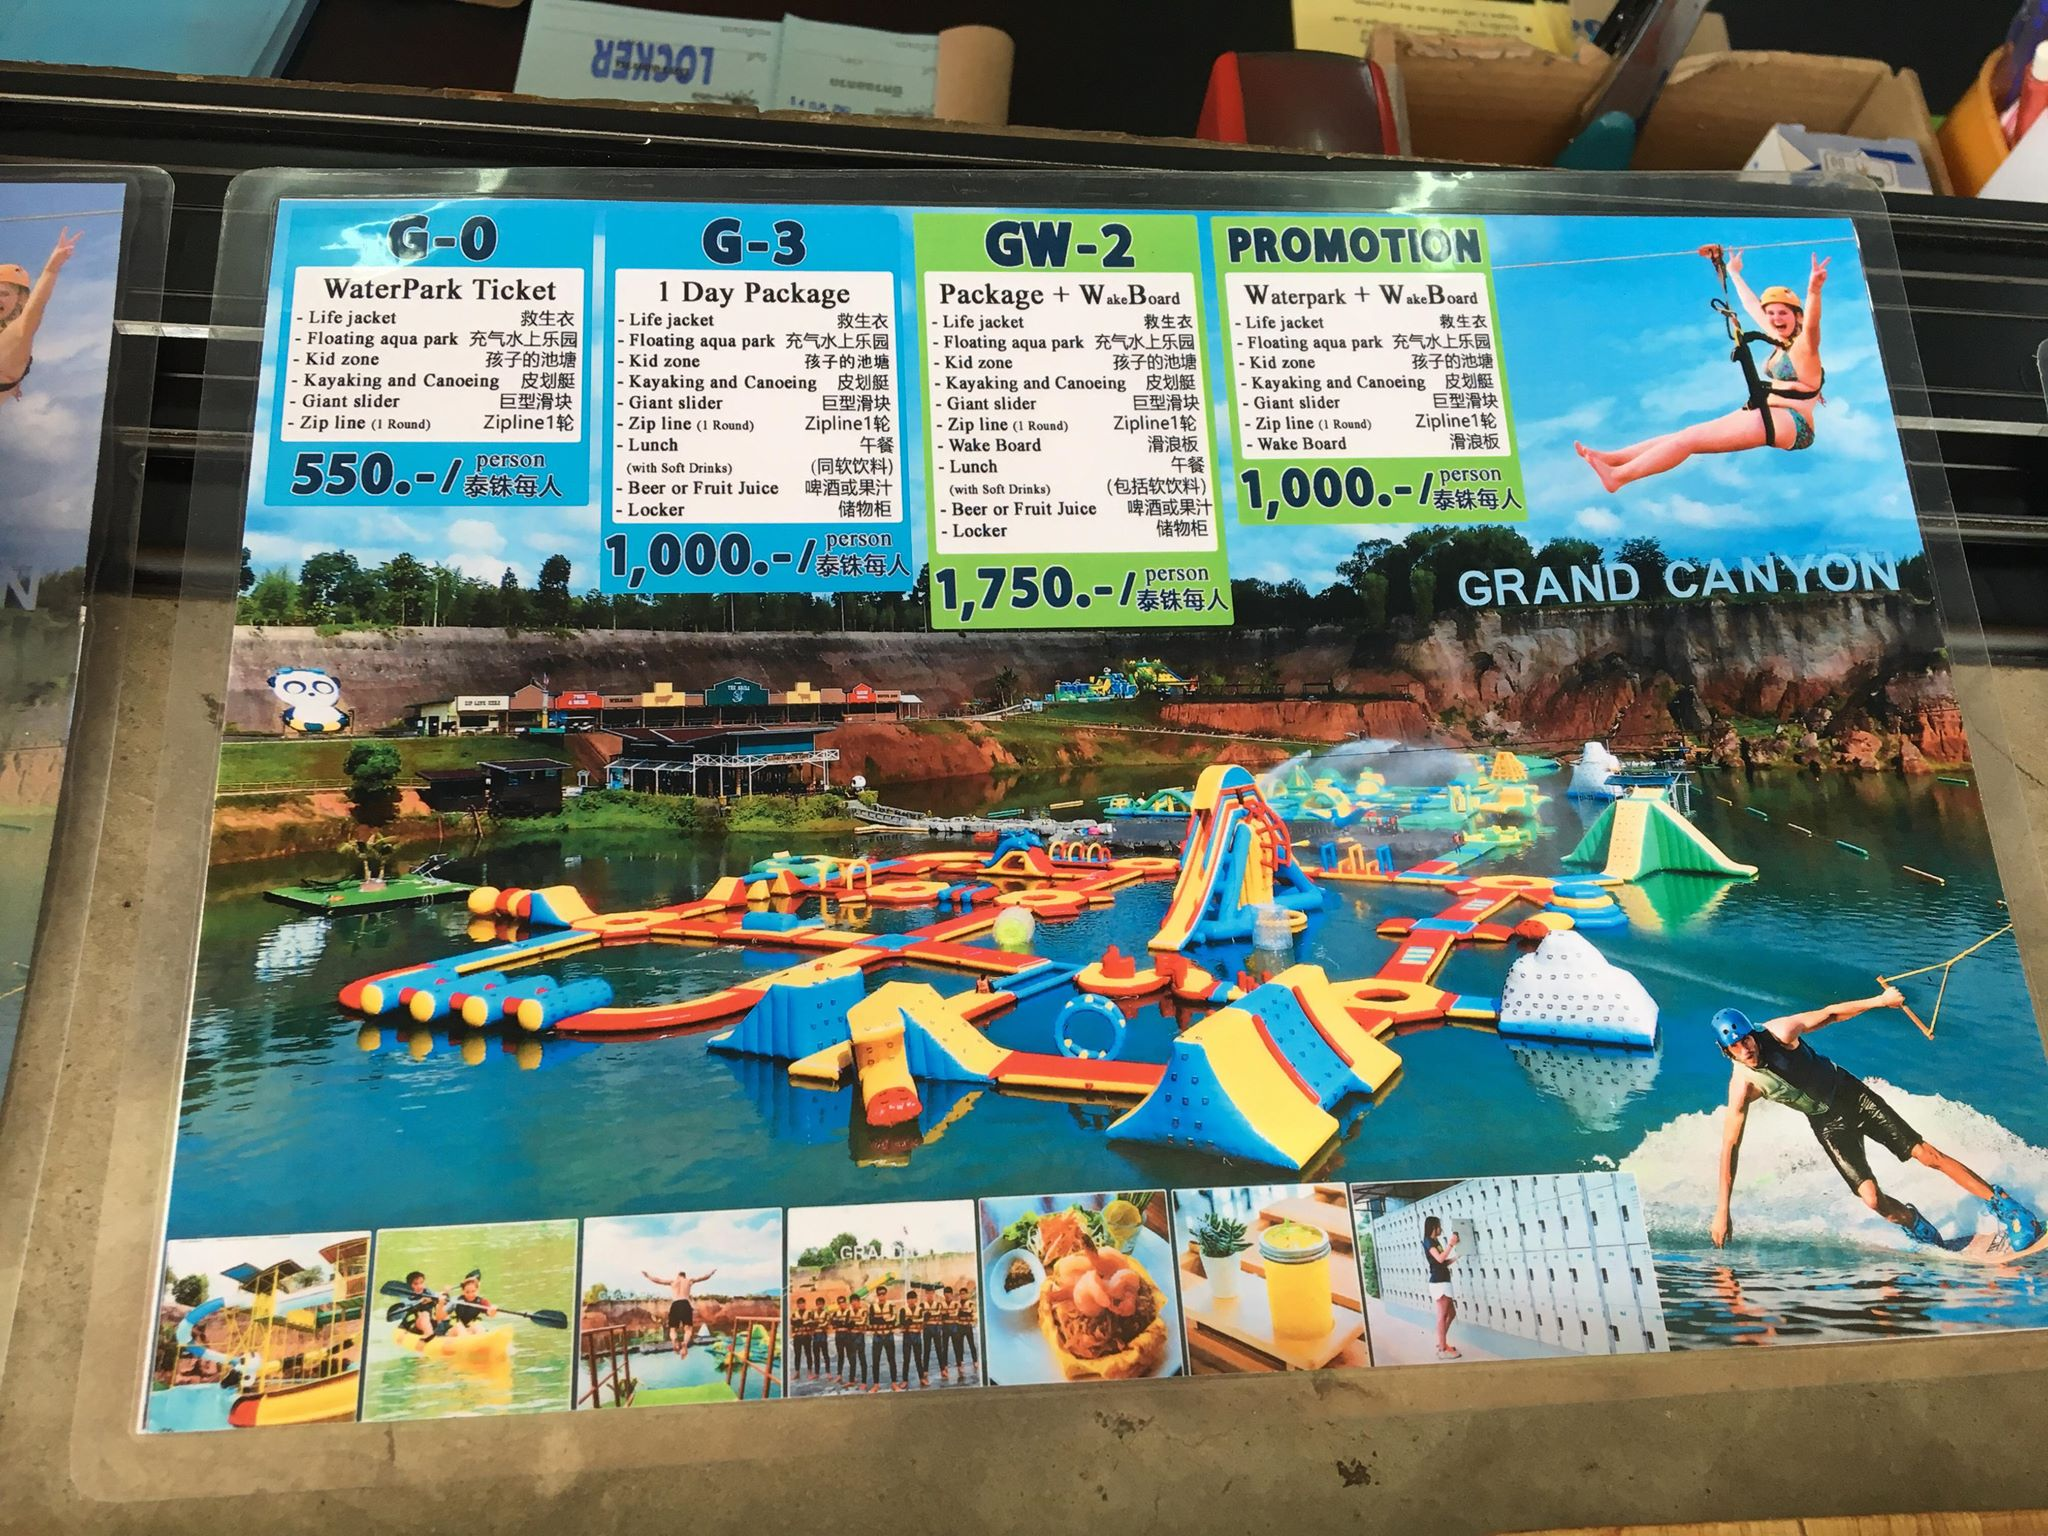 Grand Canyon Waterpark Price list.jpg